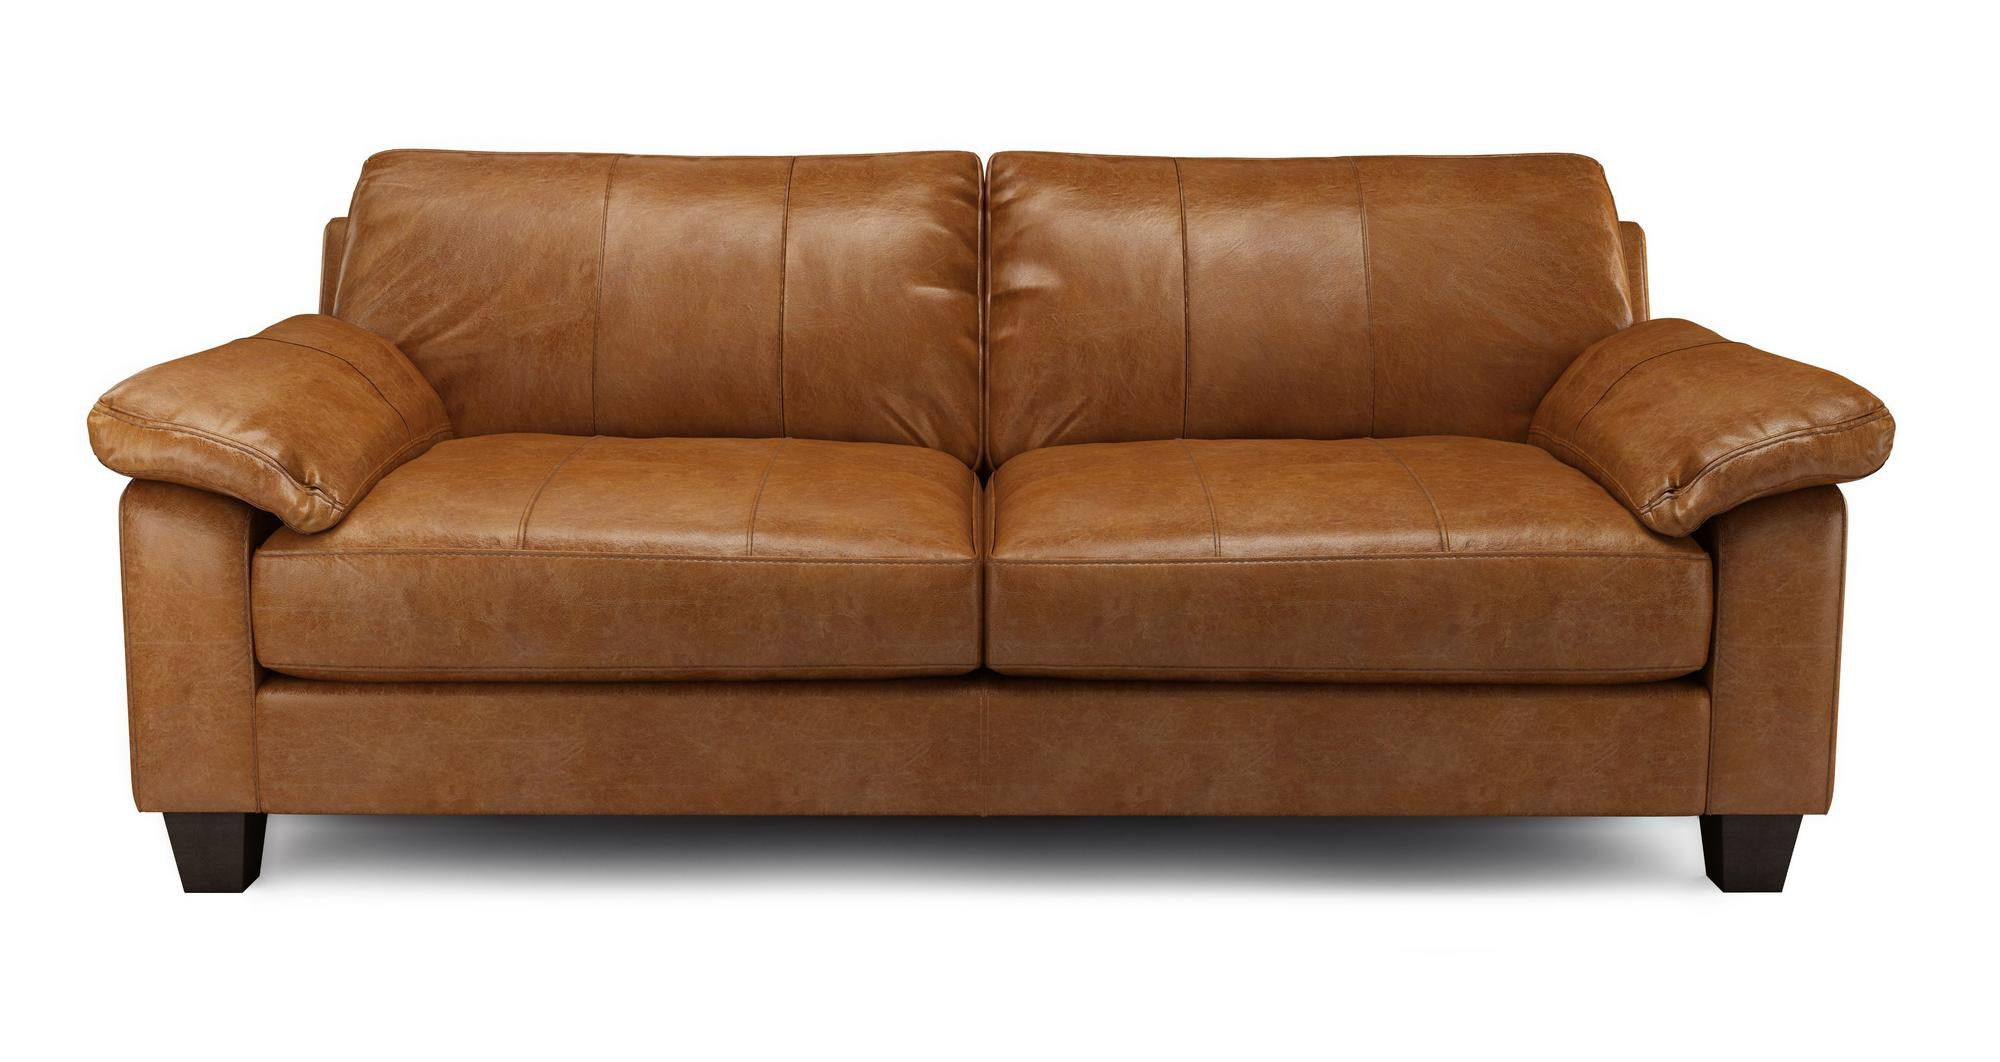 Dfs 3 Seater Sofa Images Room Designs Decorating Ideas Leather Couch Tan House